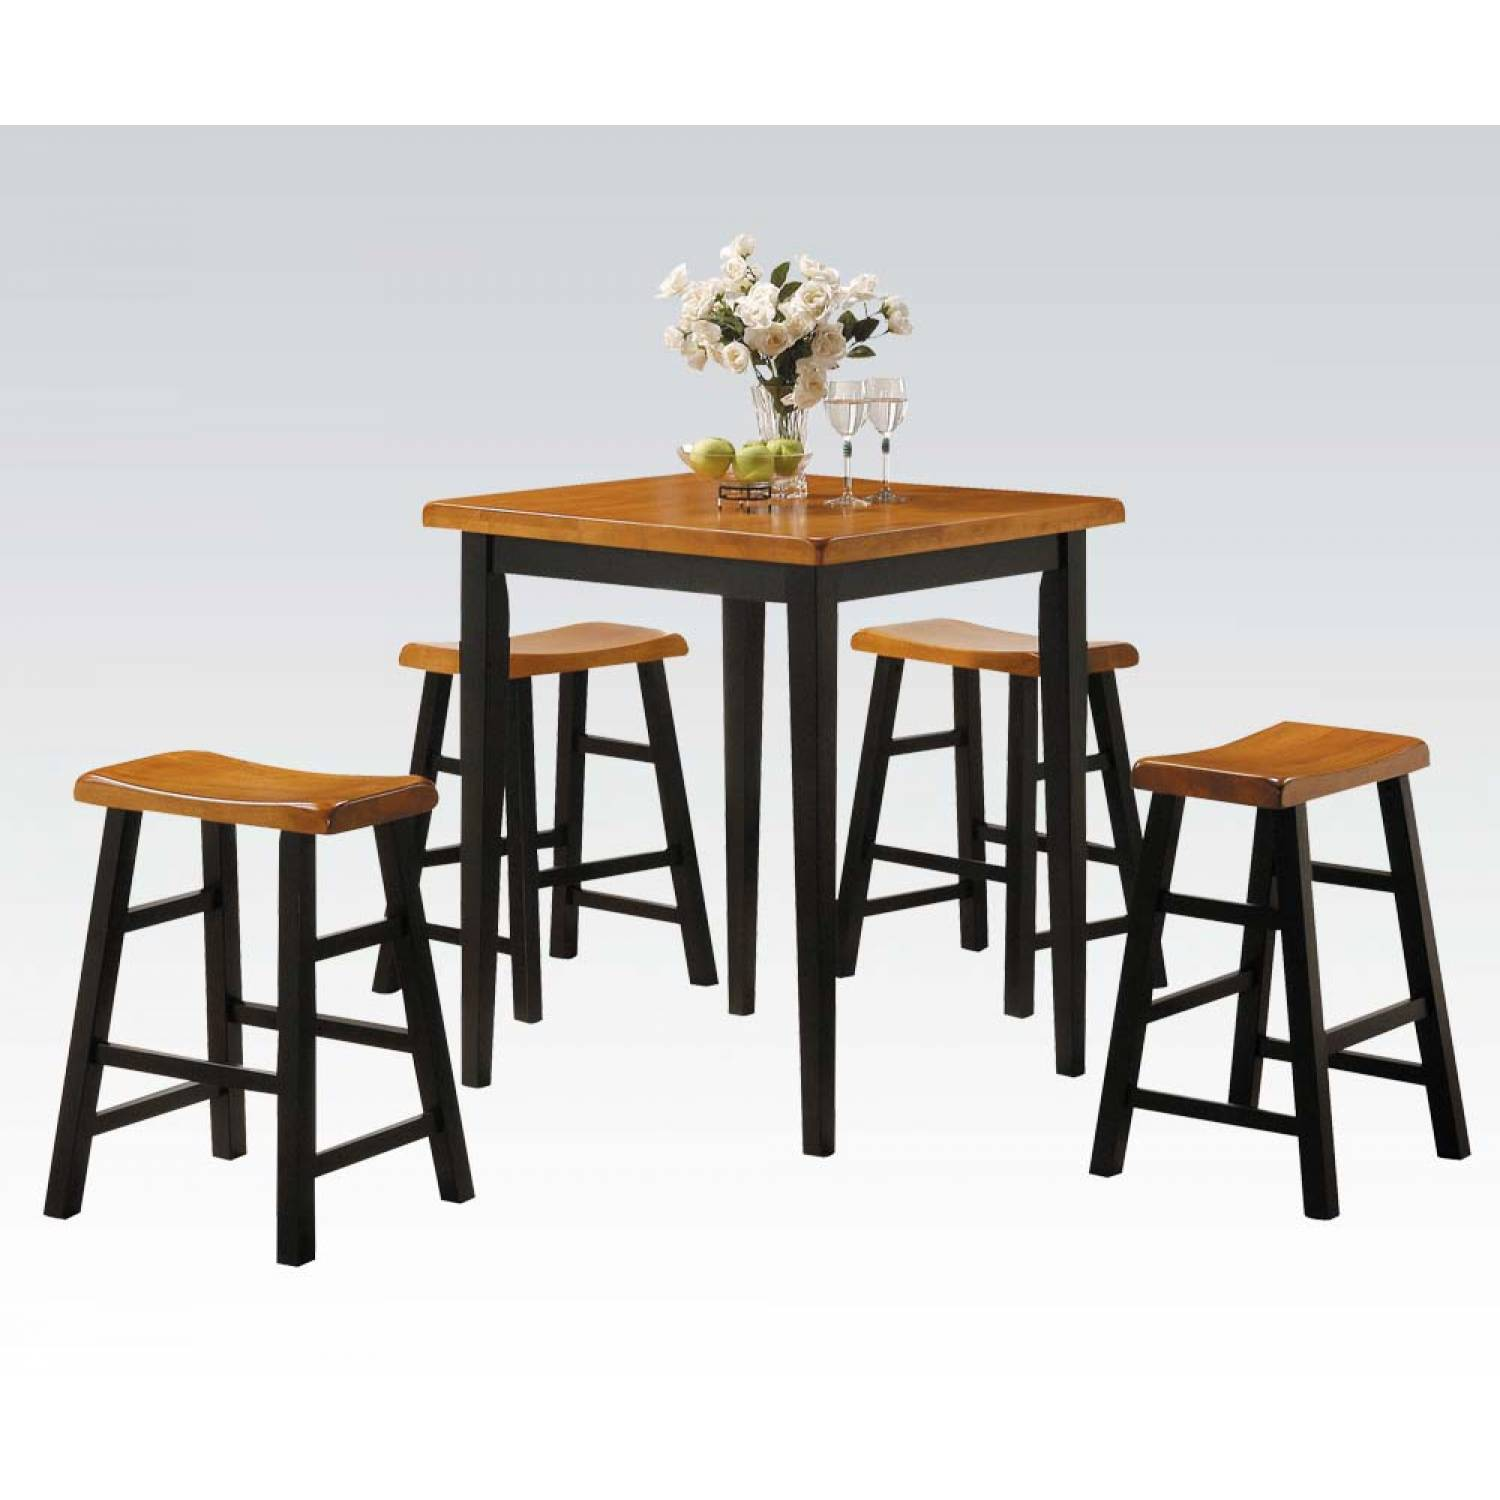 Kitchen Counter Height ArchivesBlack Wood Table Images 100 Cabinet From